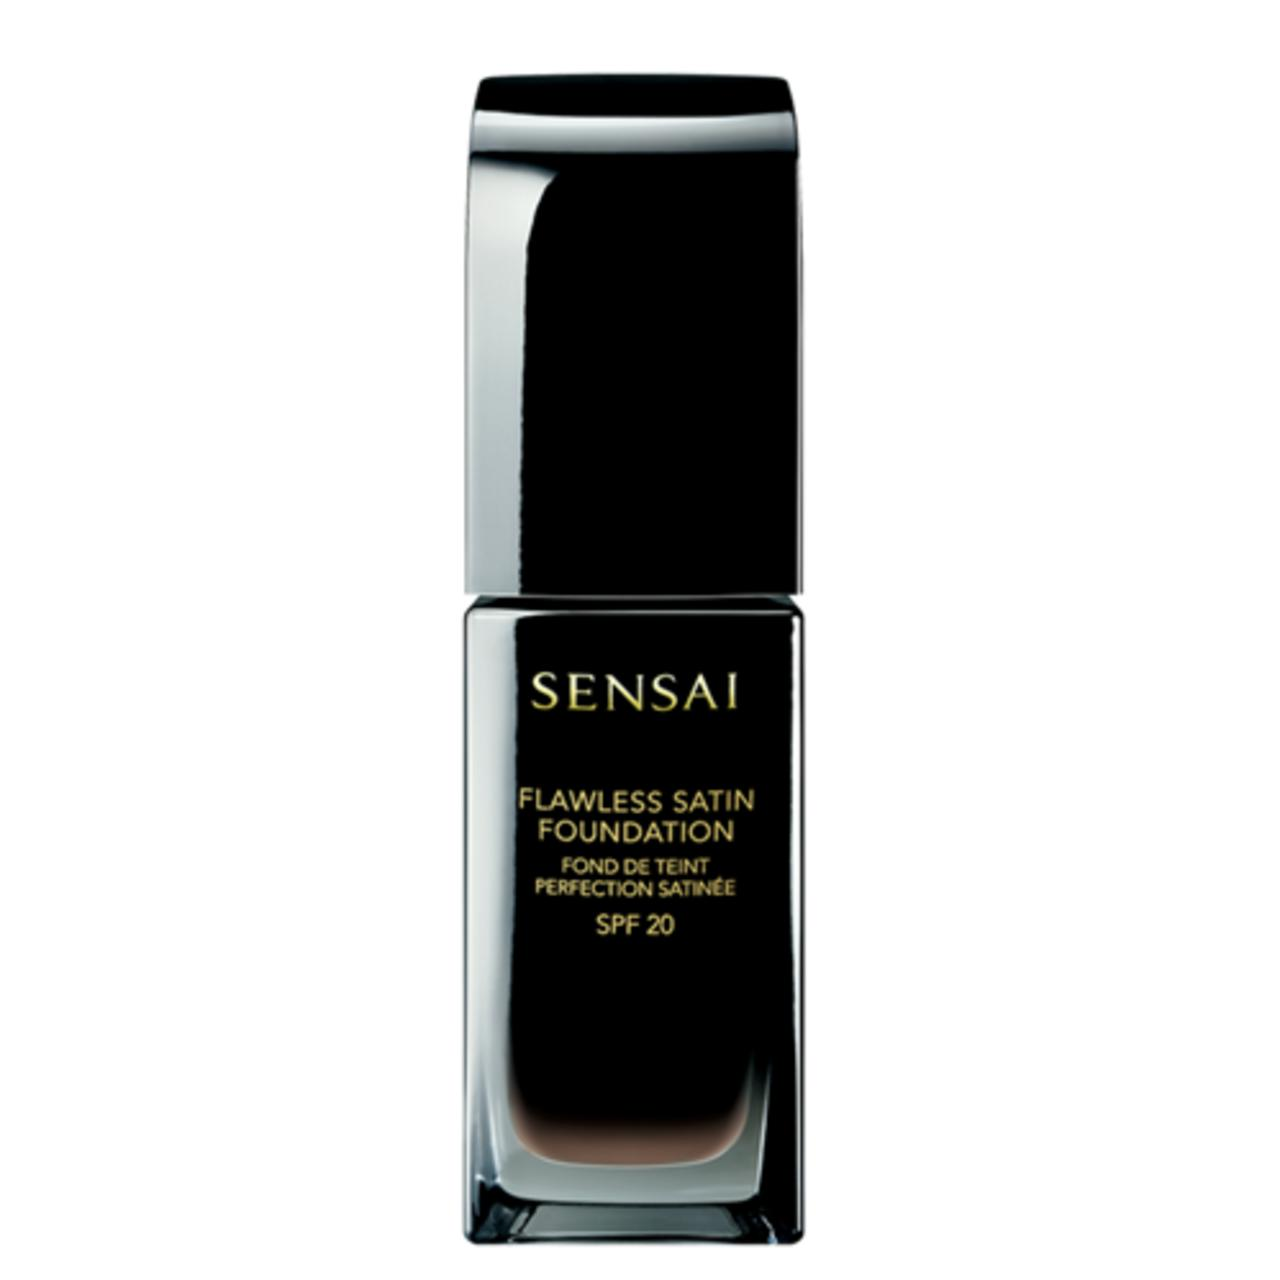 Sensai Flawless Satin Foundation SPF 20.